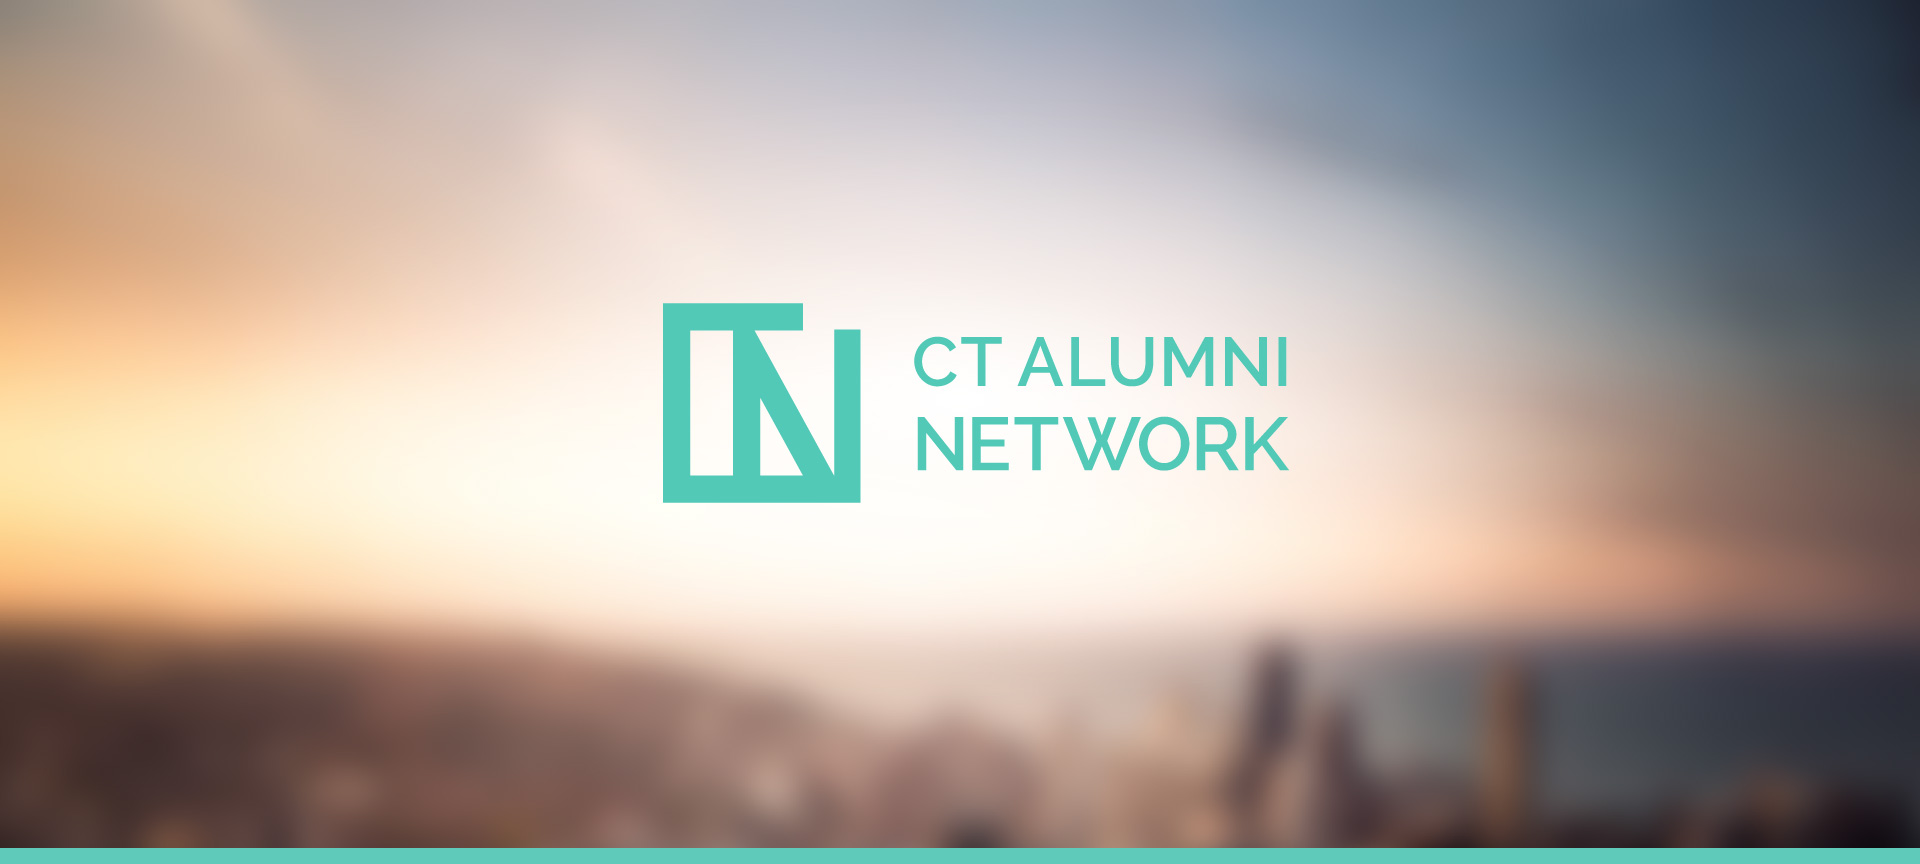 CT-Alumni-Network